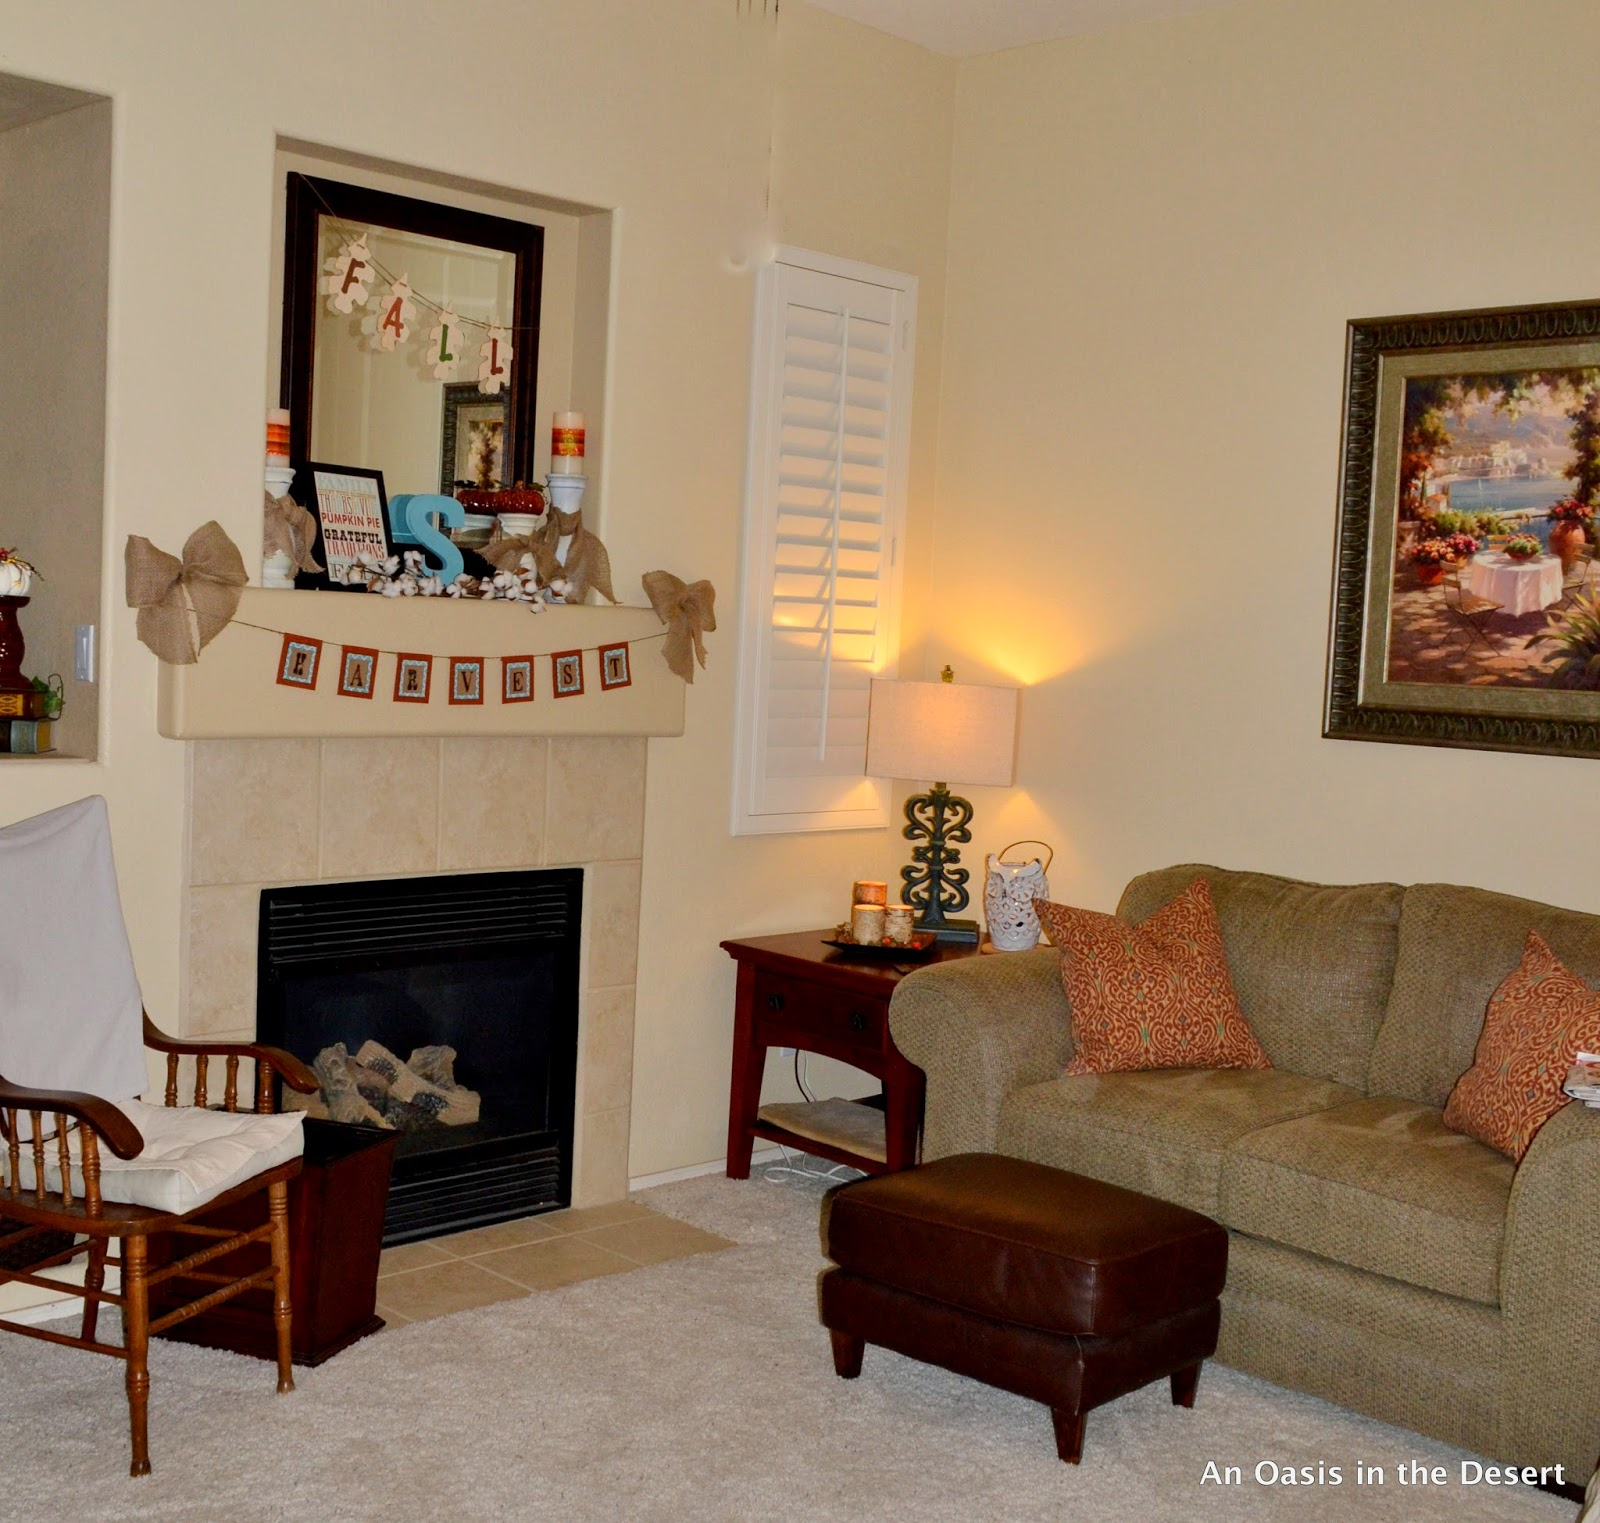 Hearth Room: An Oasis In The Desert: Fall In The Hearth Room